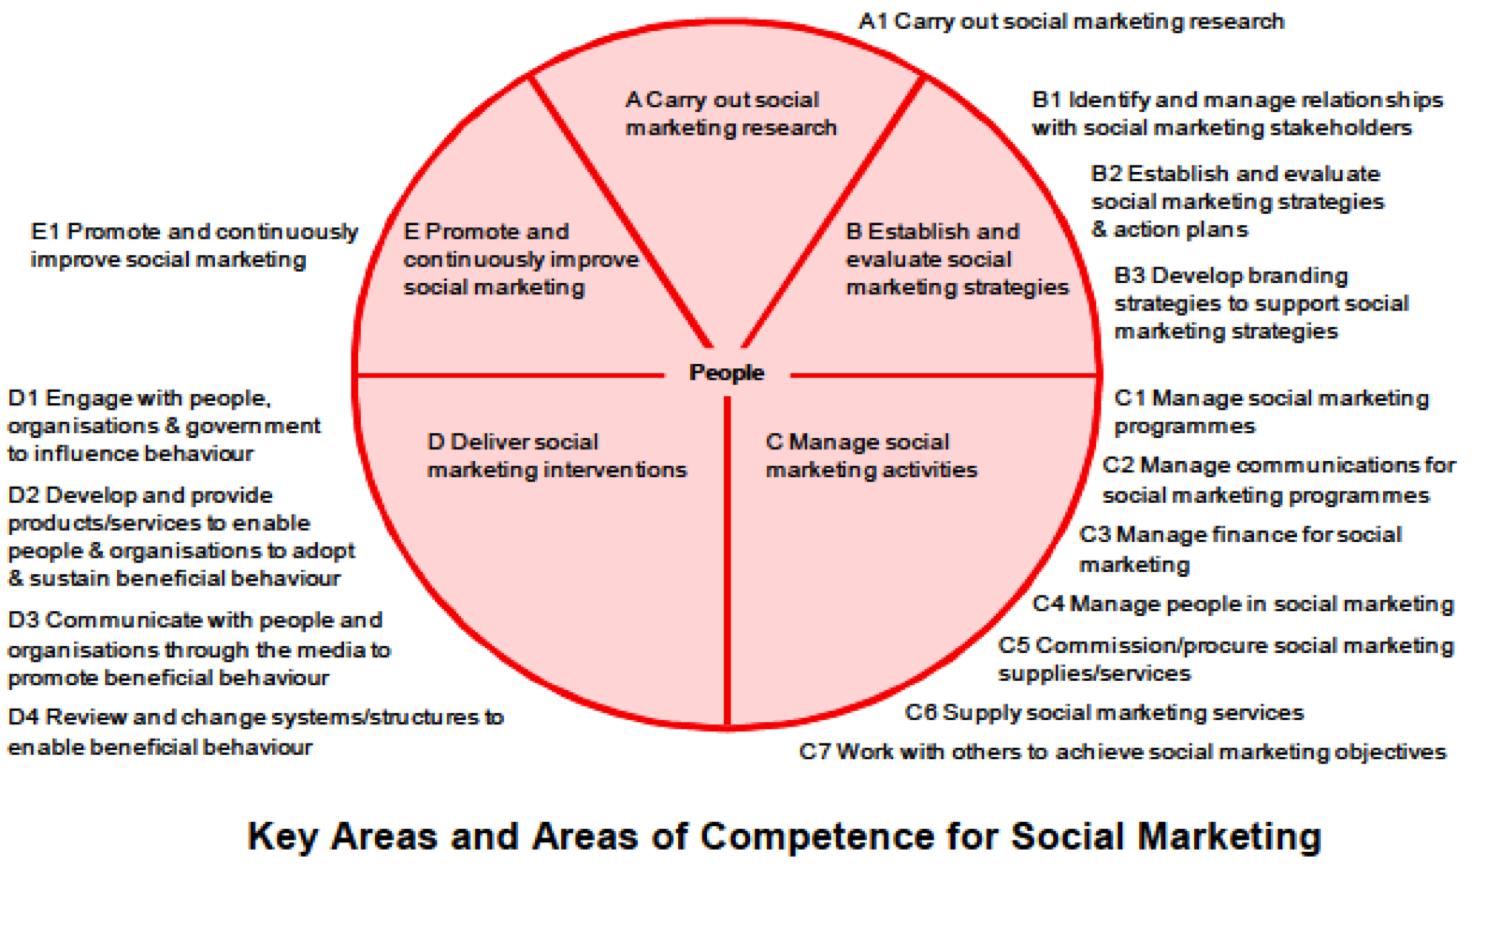 Social marketing competencies 2